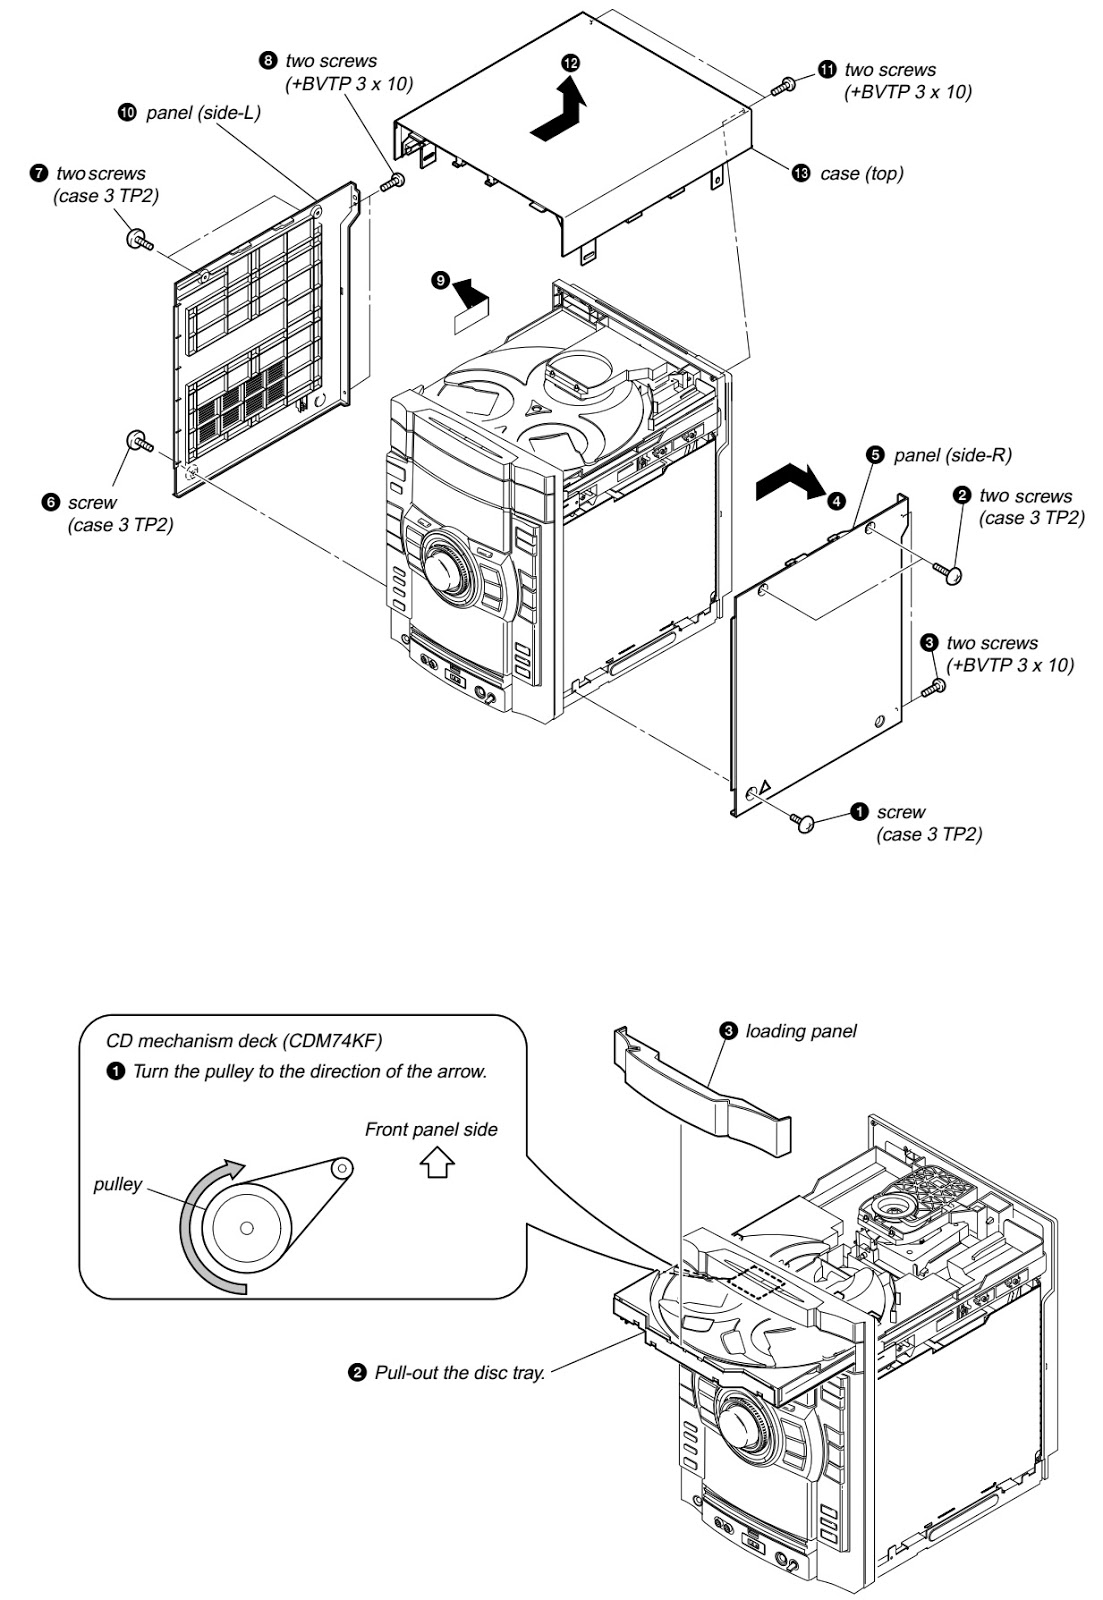 How To Disassemble Hcd Gtx777 Cd Deck Receiver